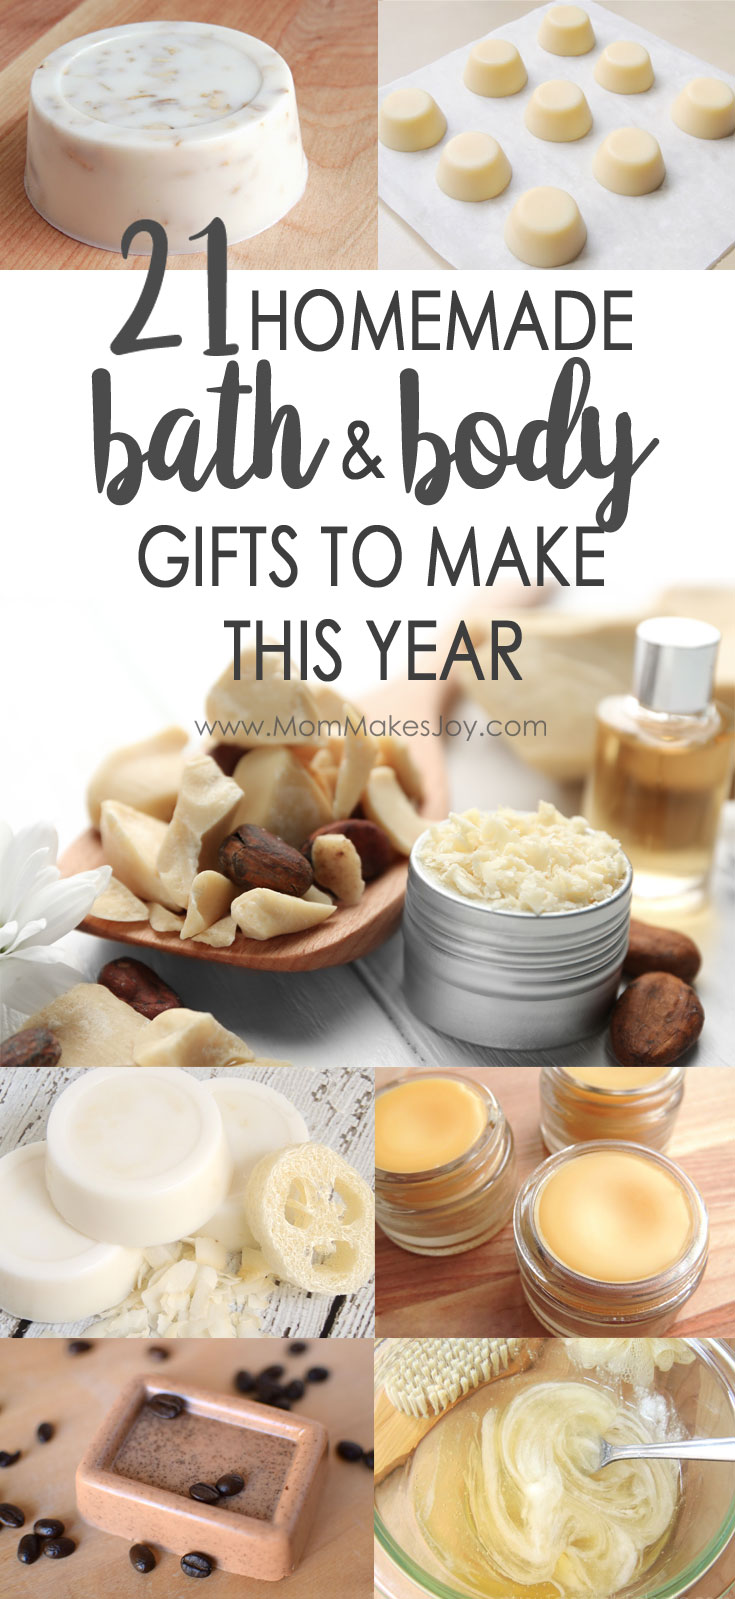 Looking for the perfect gift for a loved one, acquaintance, neighbor, or coworker? These 21 DIY bath and body gifts are easy to make and will not disappoint! | Gift Ideas | Holiday gift ideas | Bridal shower favors | Baby shower favors